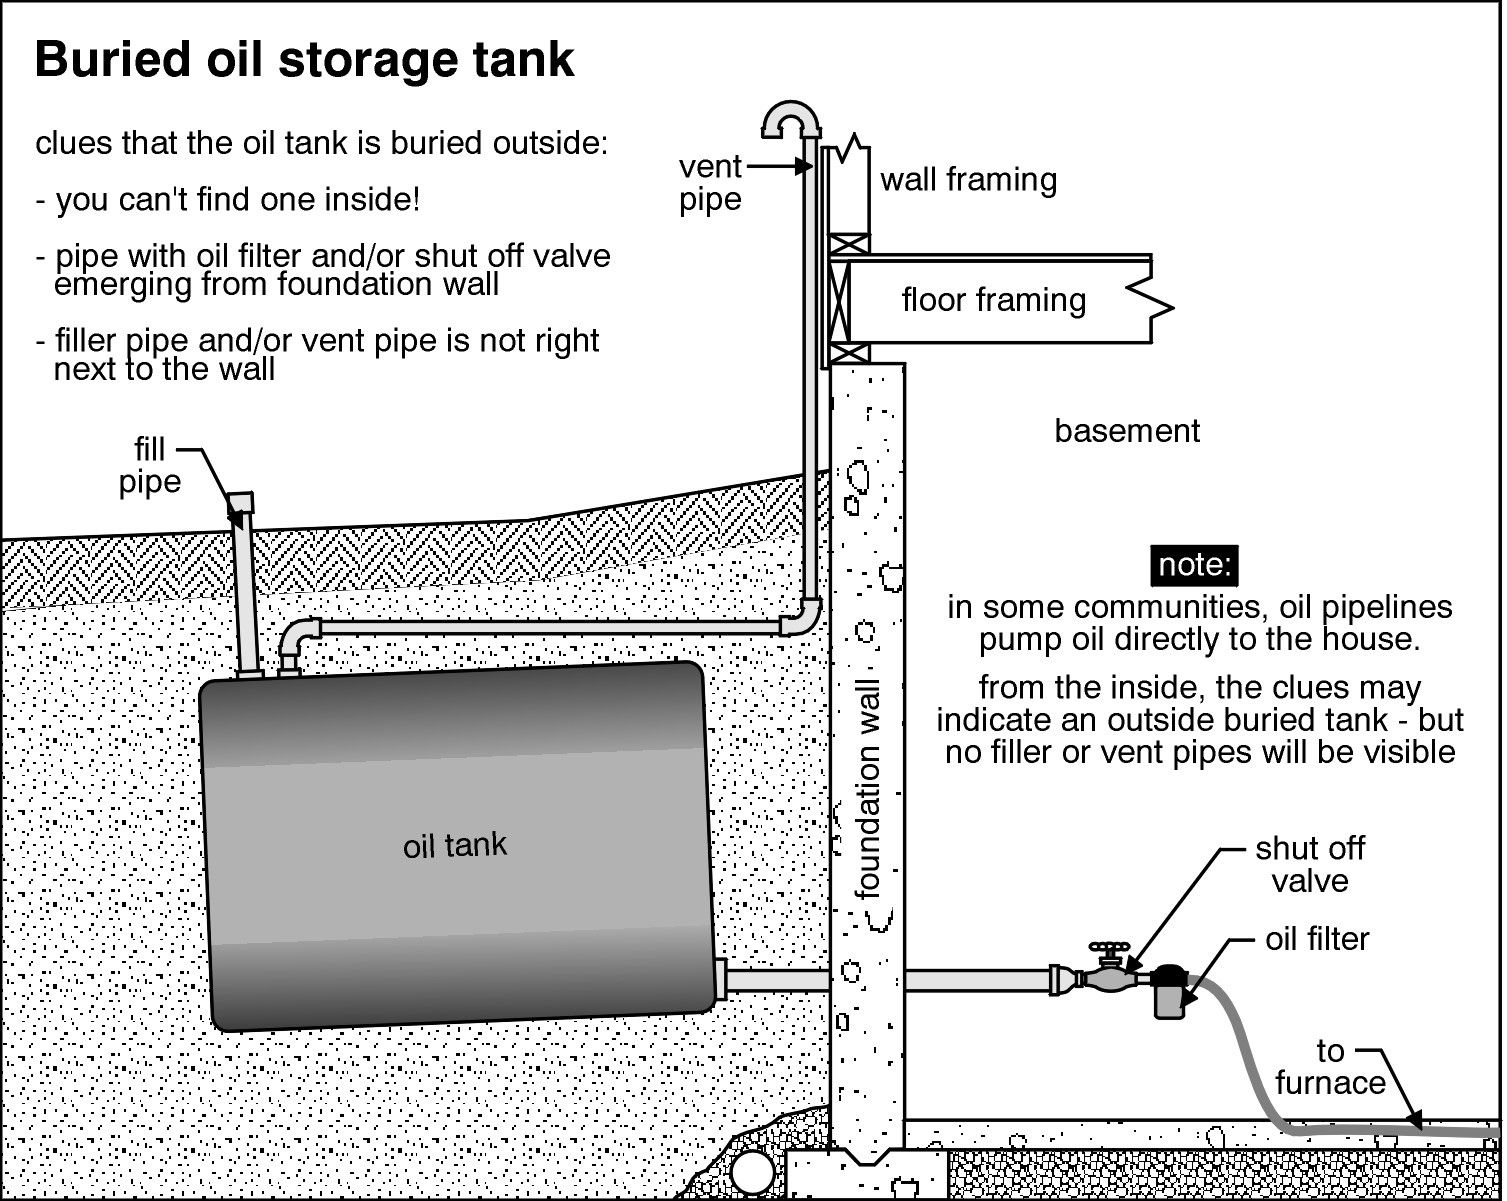 Pin By Robby Schiff On About Oil Tanks By Oil Tank